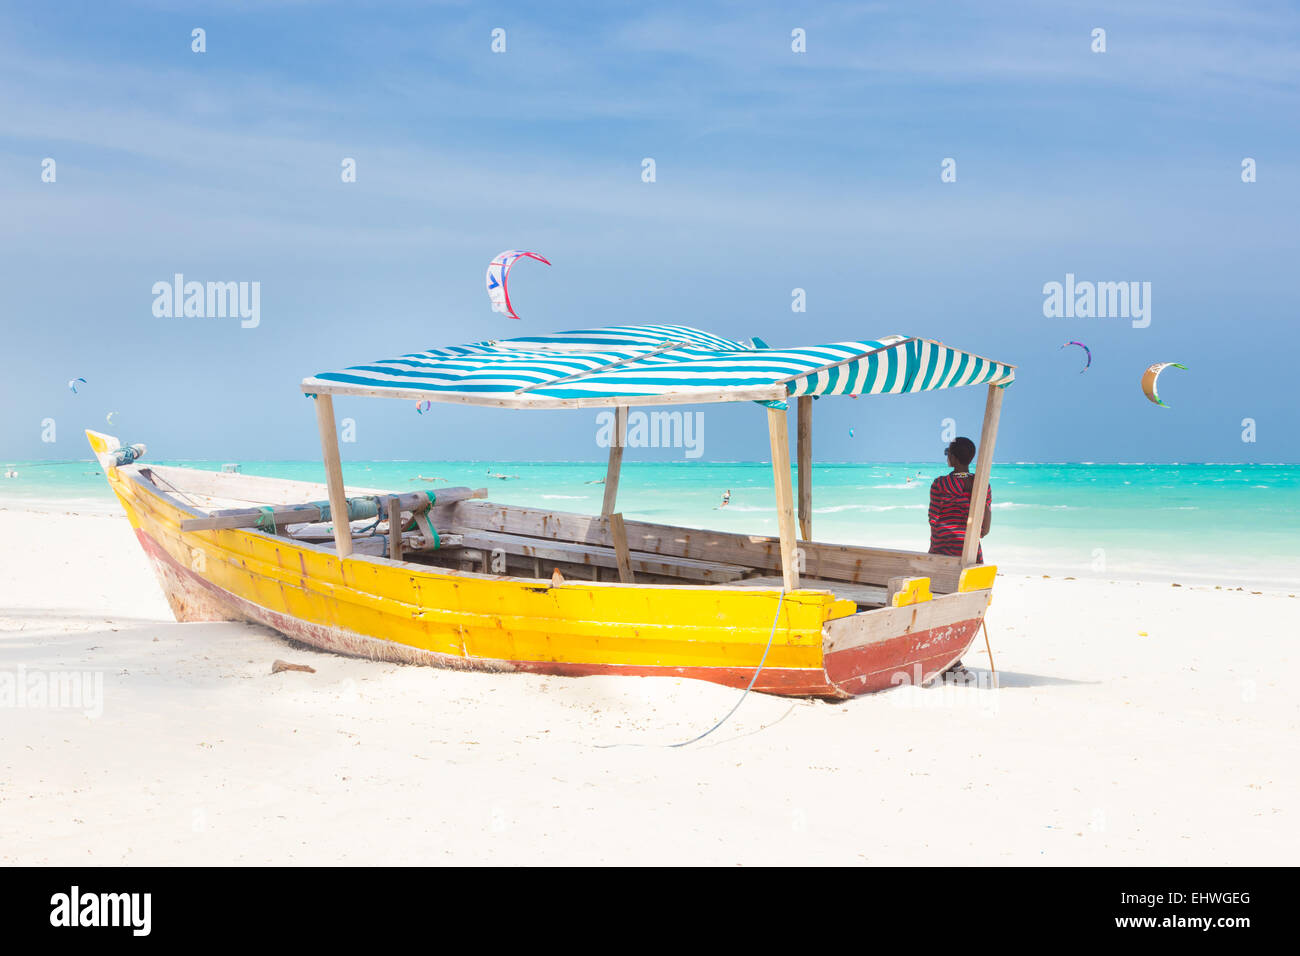 White tropical sandy beach on Zanzibar. - Stock Image